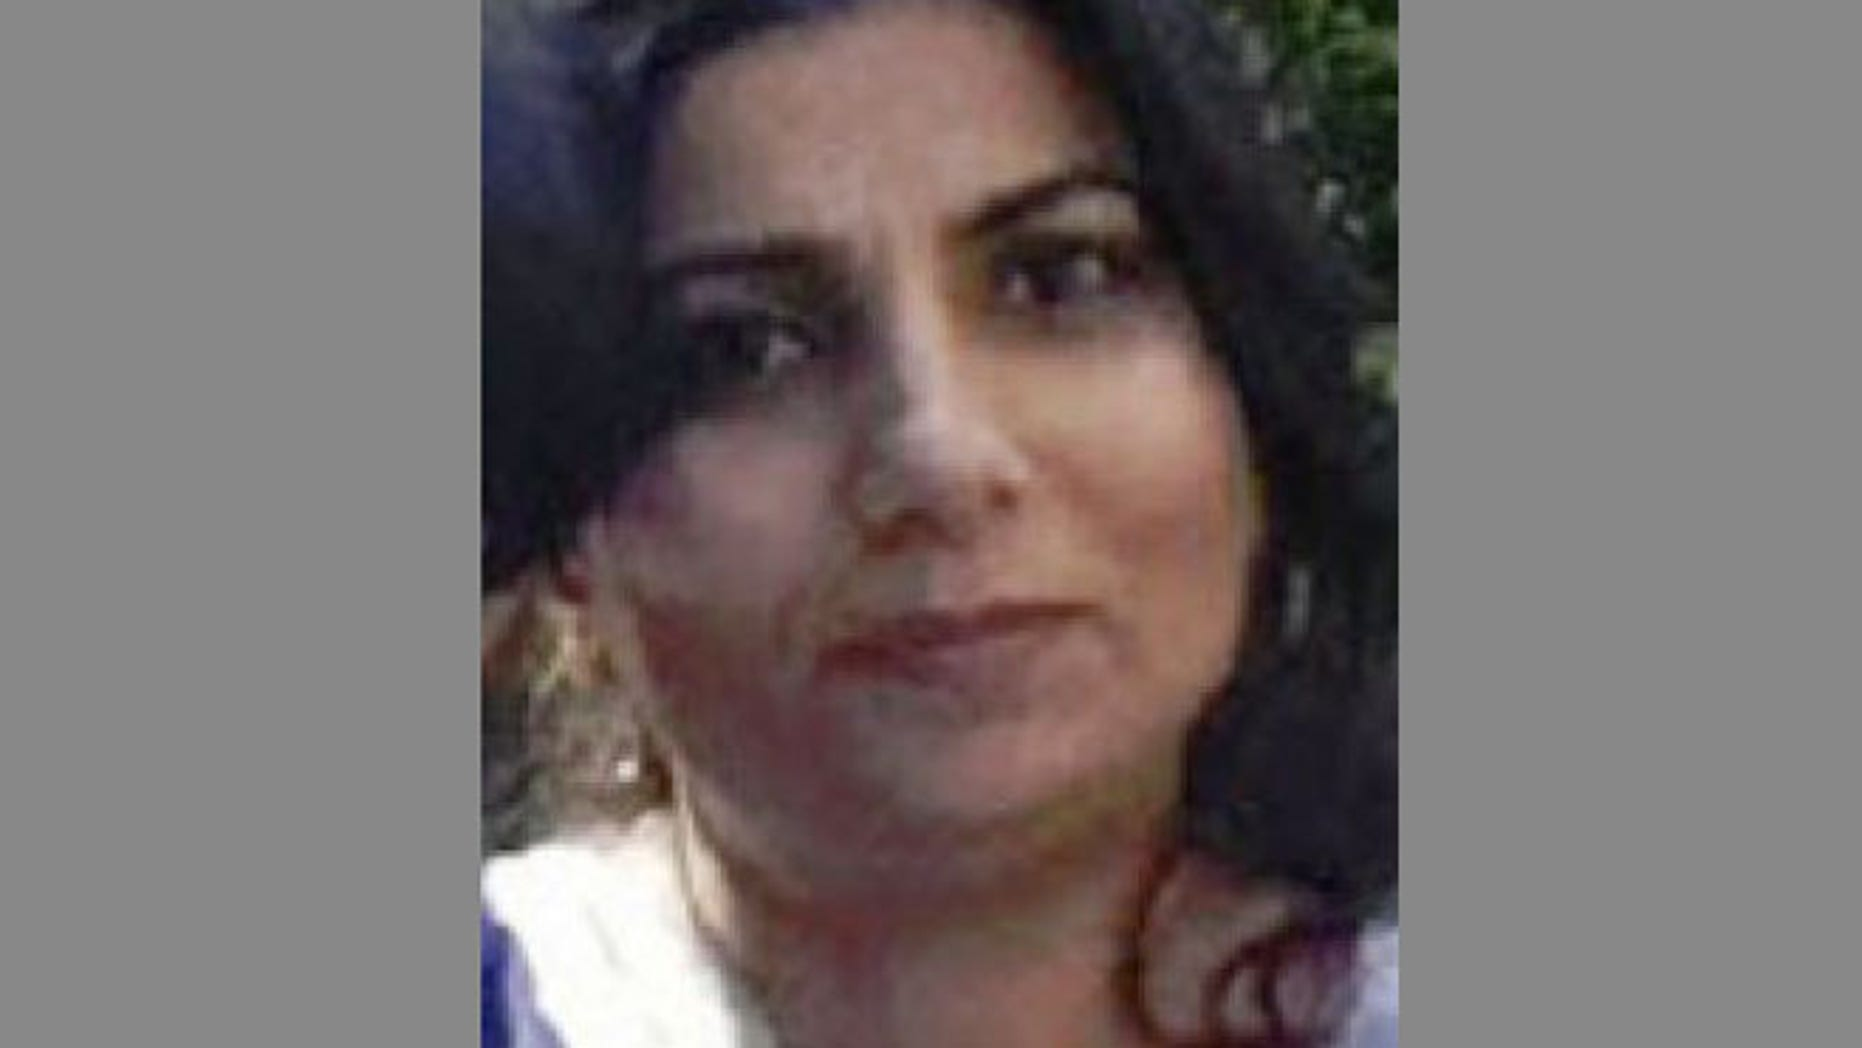 In this photo downloaded from the New York State Police website, Sarwat Lodhi, is shown. Lodhi is missing and police fear that she may be injured and a fourth victim after three members of her immediate family were found dead from gunshot wounds in Pleasant Valley, 75 miles north of New York City.